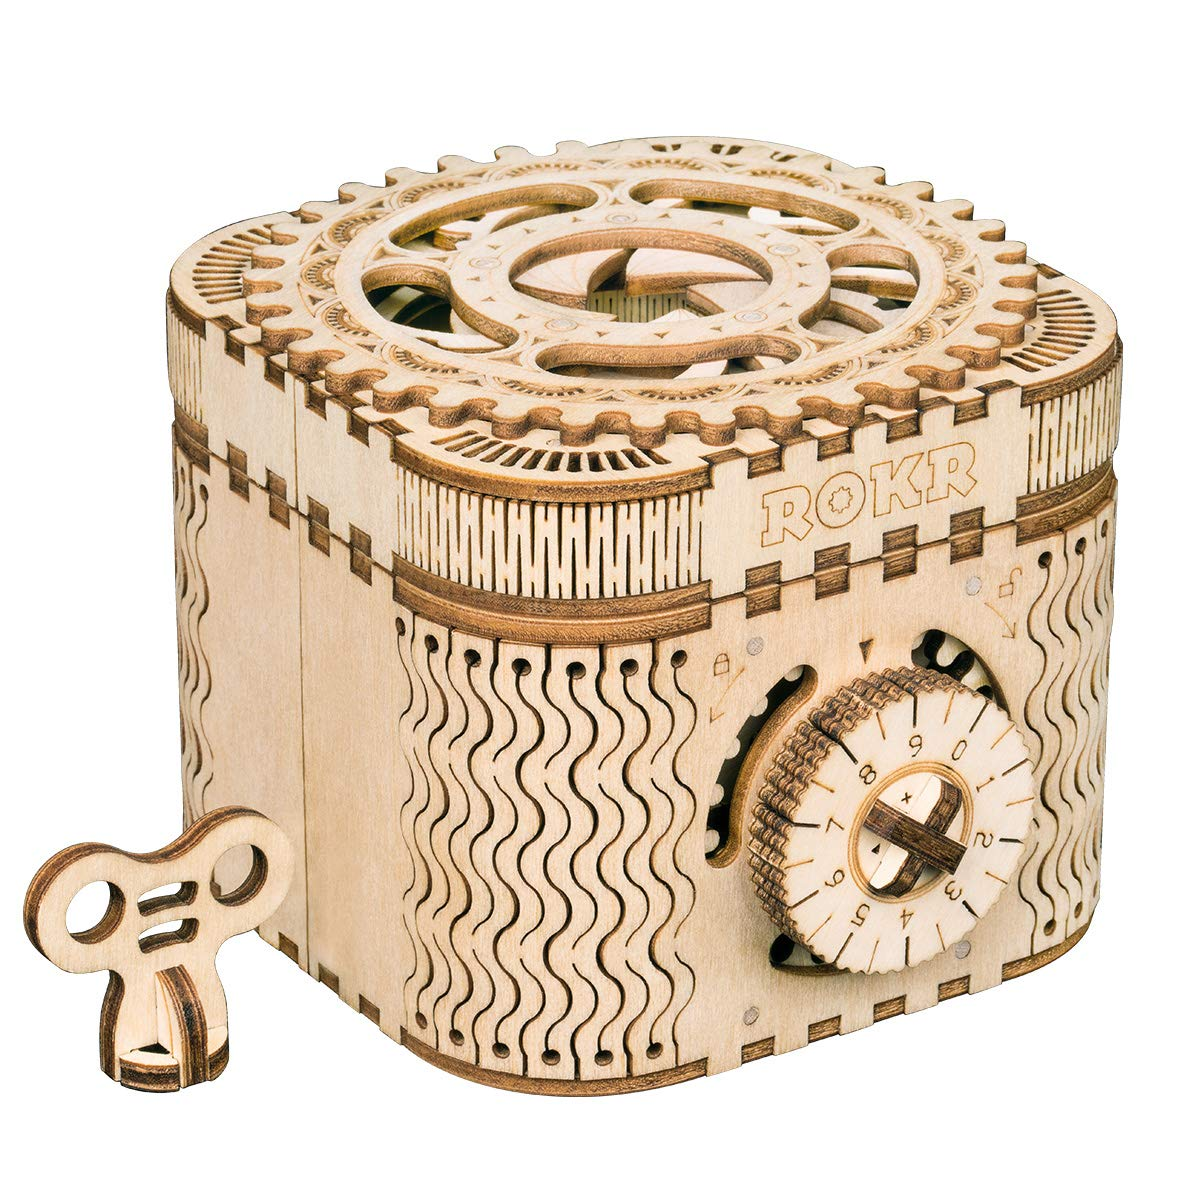 RoWood Mechanical Gear Treasure Box - 3D Wooden Puzzle Craft Toy, Brain Teaser DIY Model Building Kits, Gift for Adults & Teens, Age 14+ by RoWood